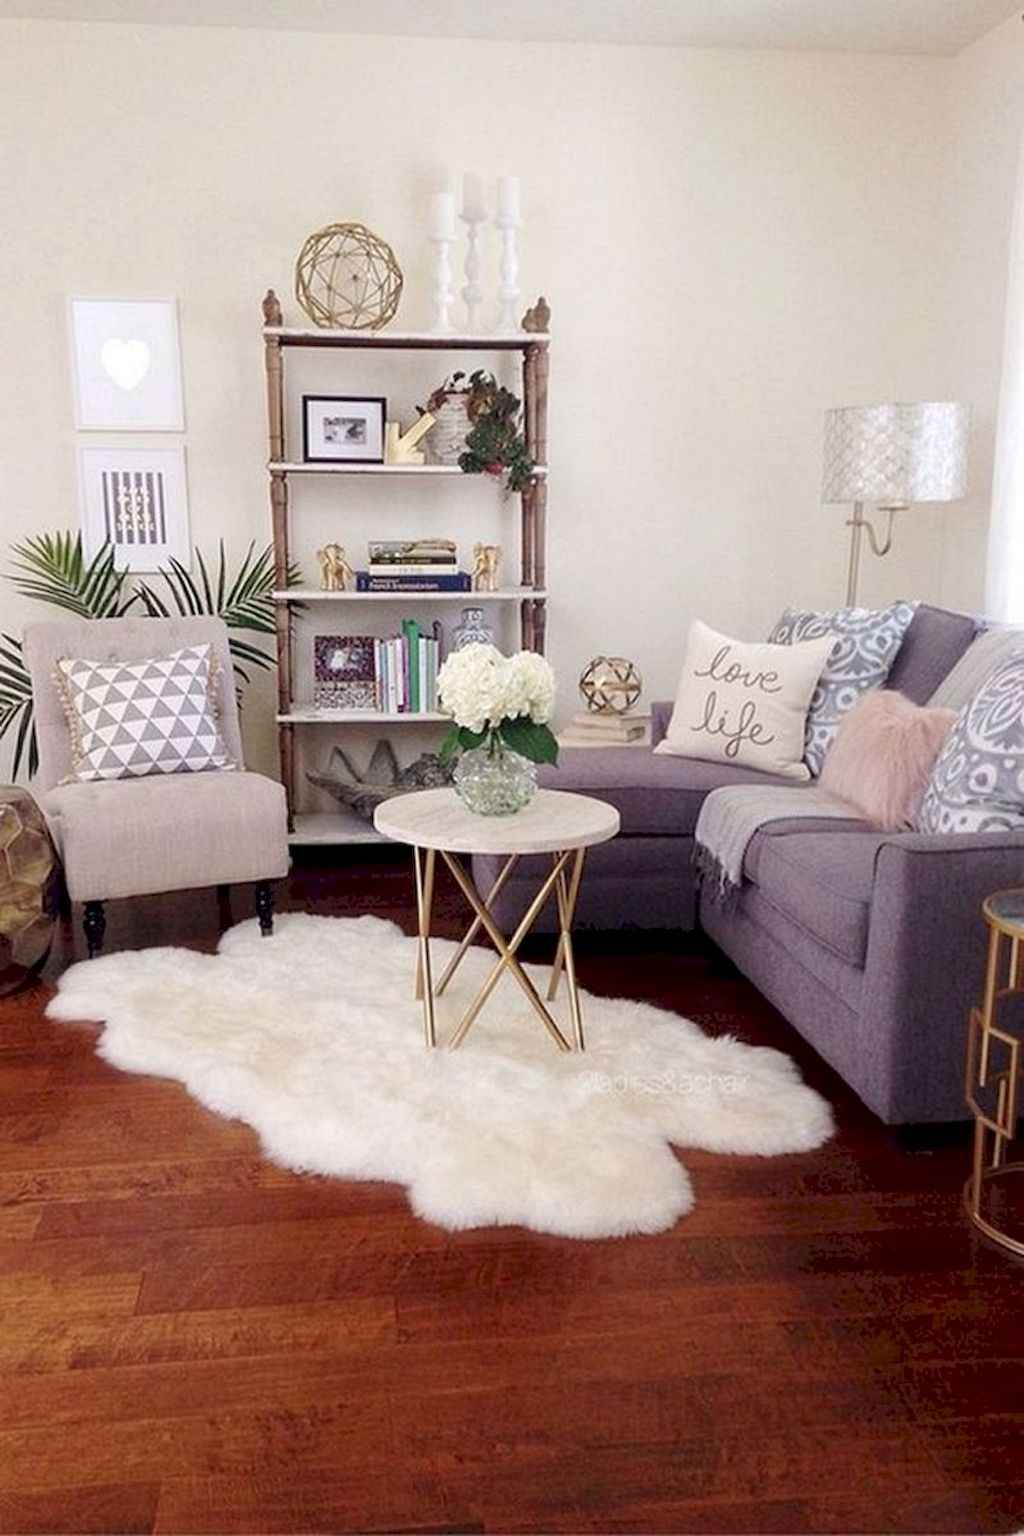 Amazing small first apartment decorating ideas (58)